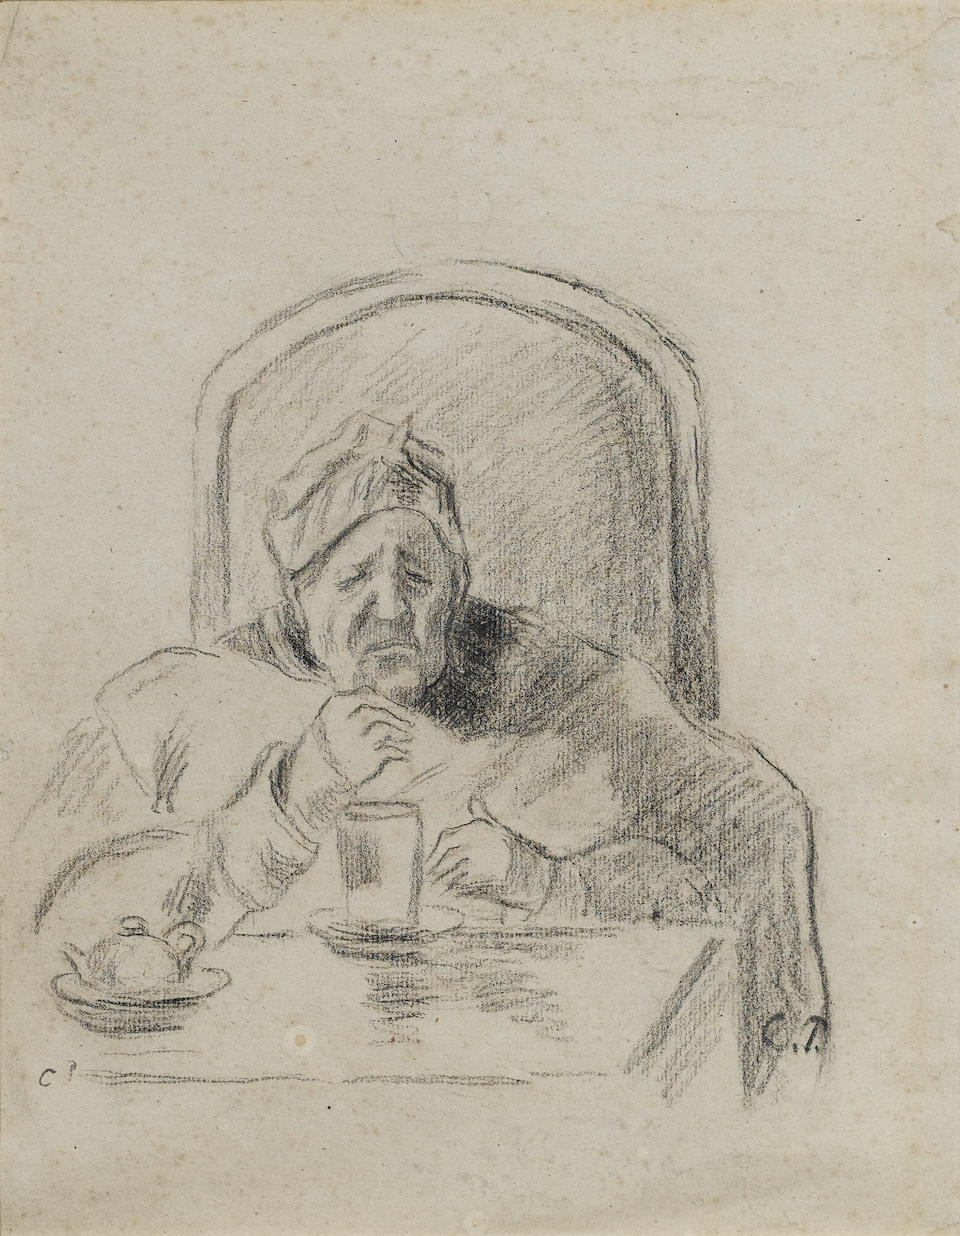 Camille Pissarro (French, 1830-1903) Portrait of the Artist's Mother (recto) Botanical Studies (verso) 29 x 23 cm (11 1/2 x 9 in)